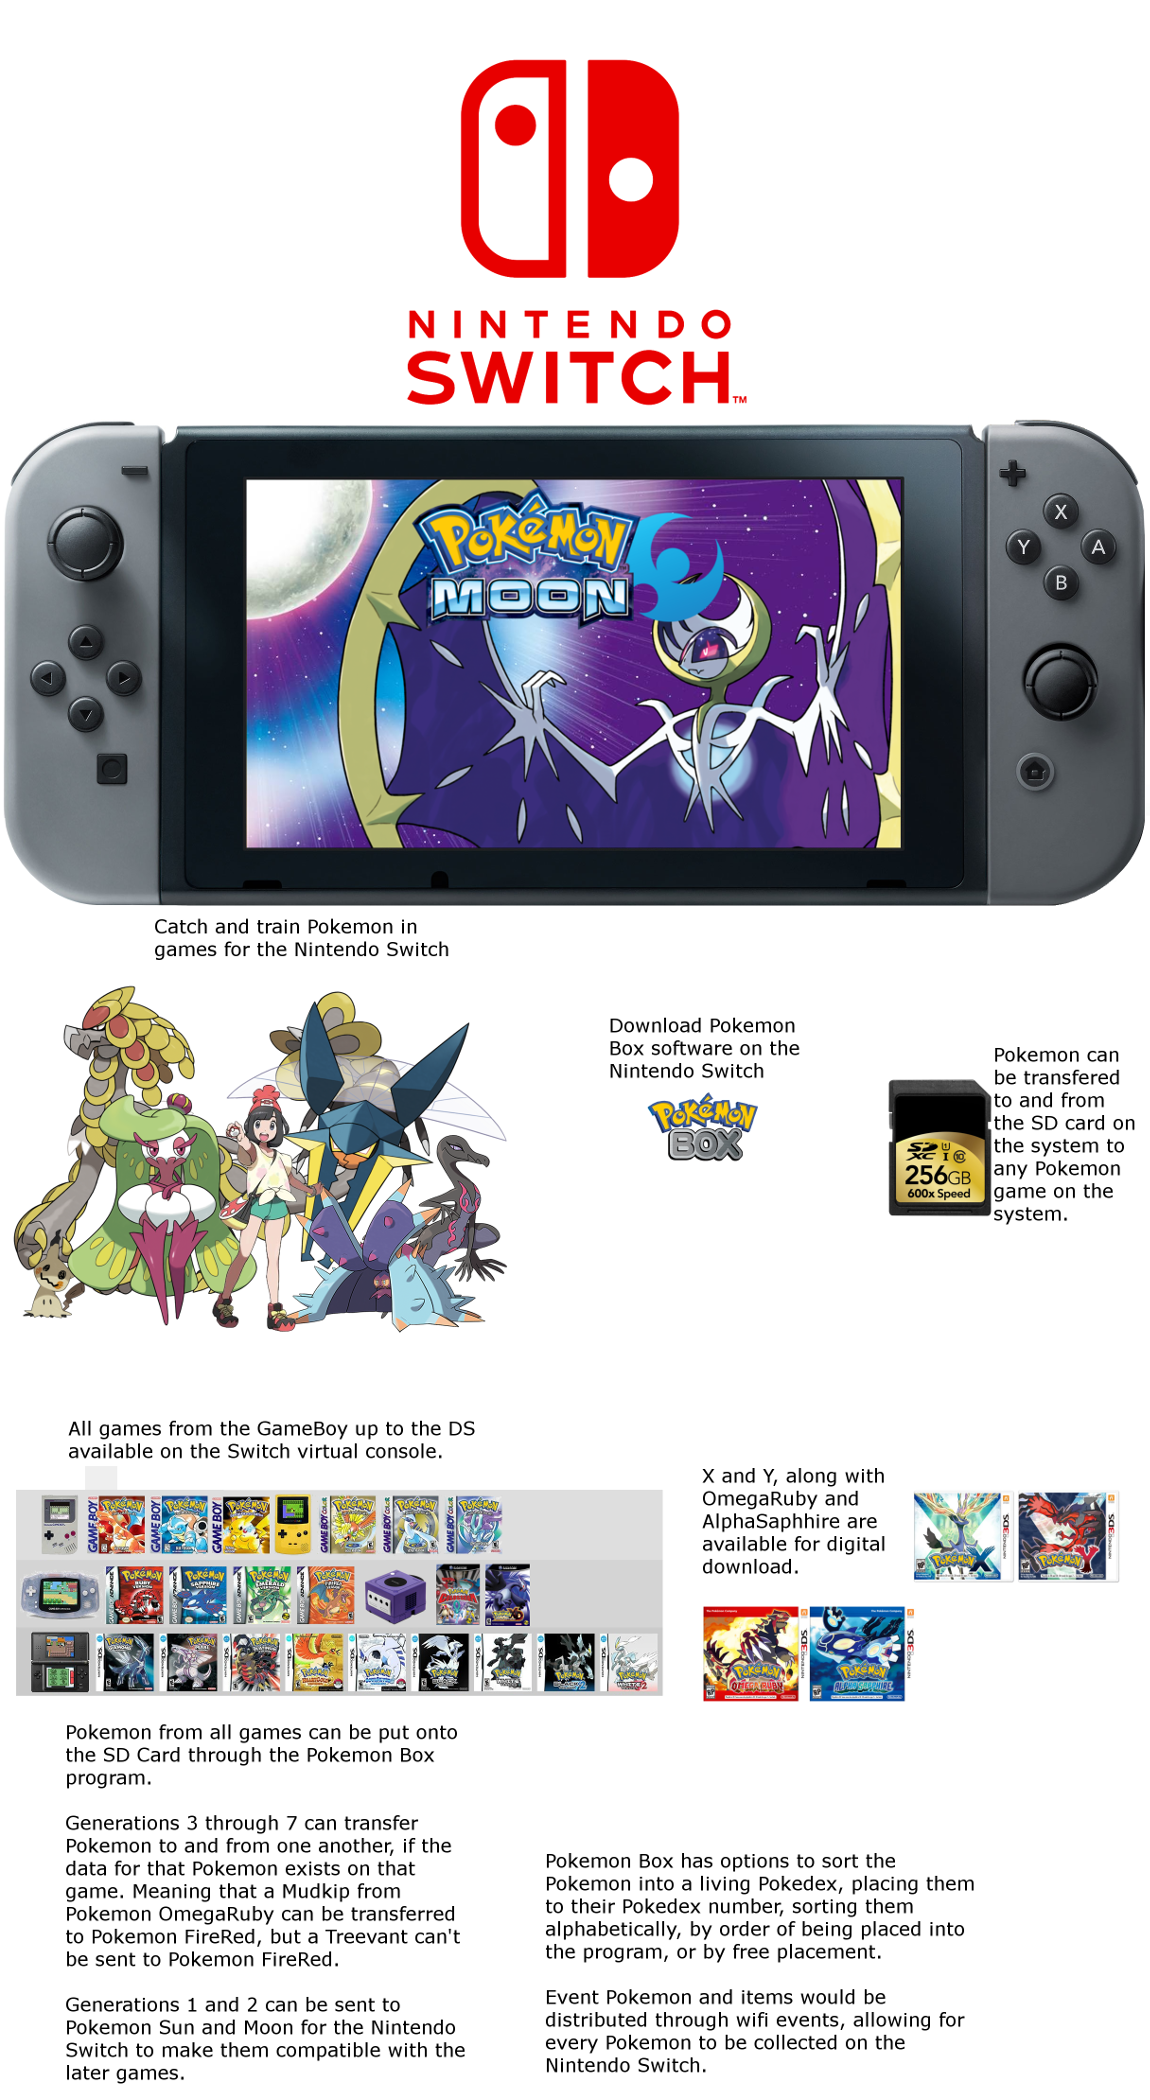 Will the next Pokemon Gen 7 games be on the new Nintendo